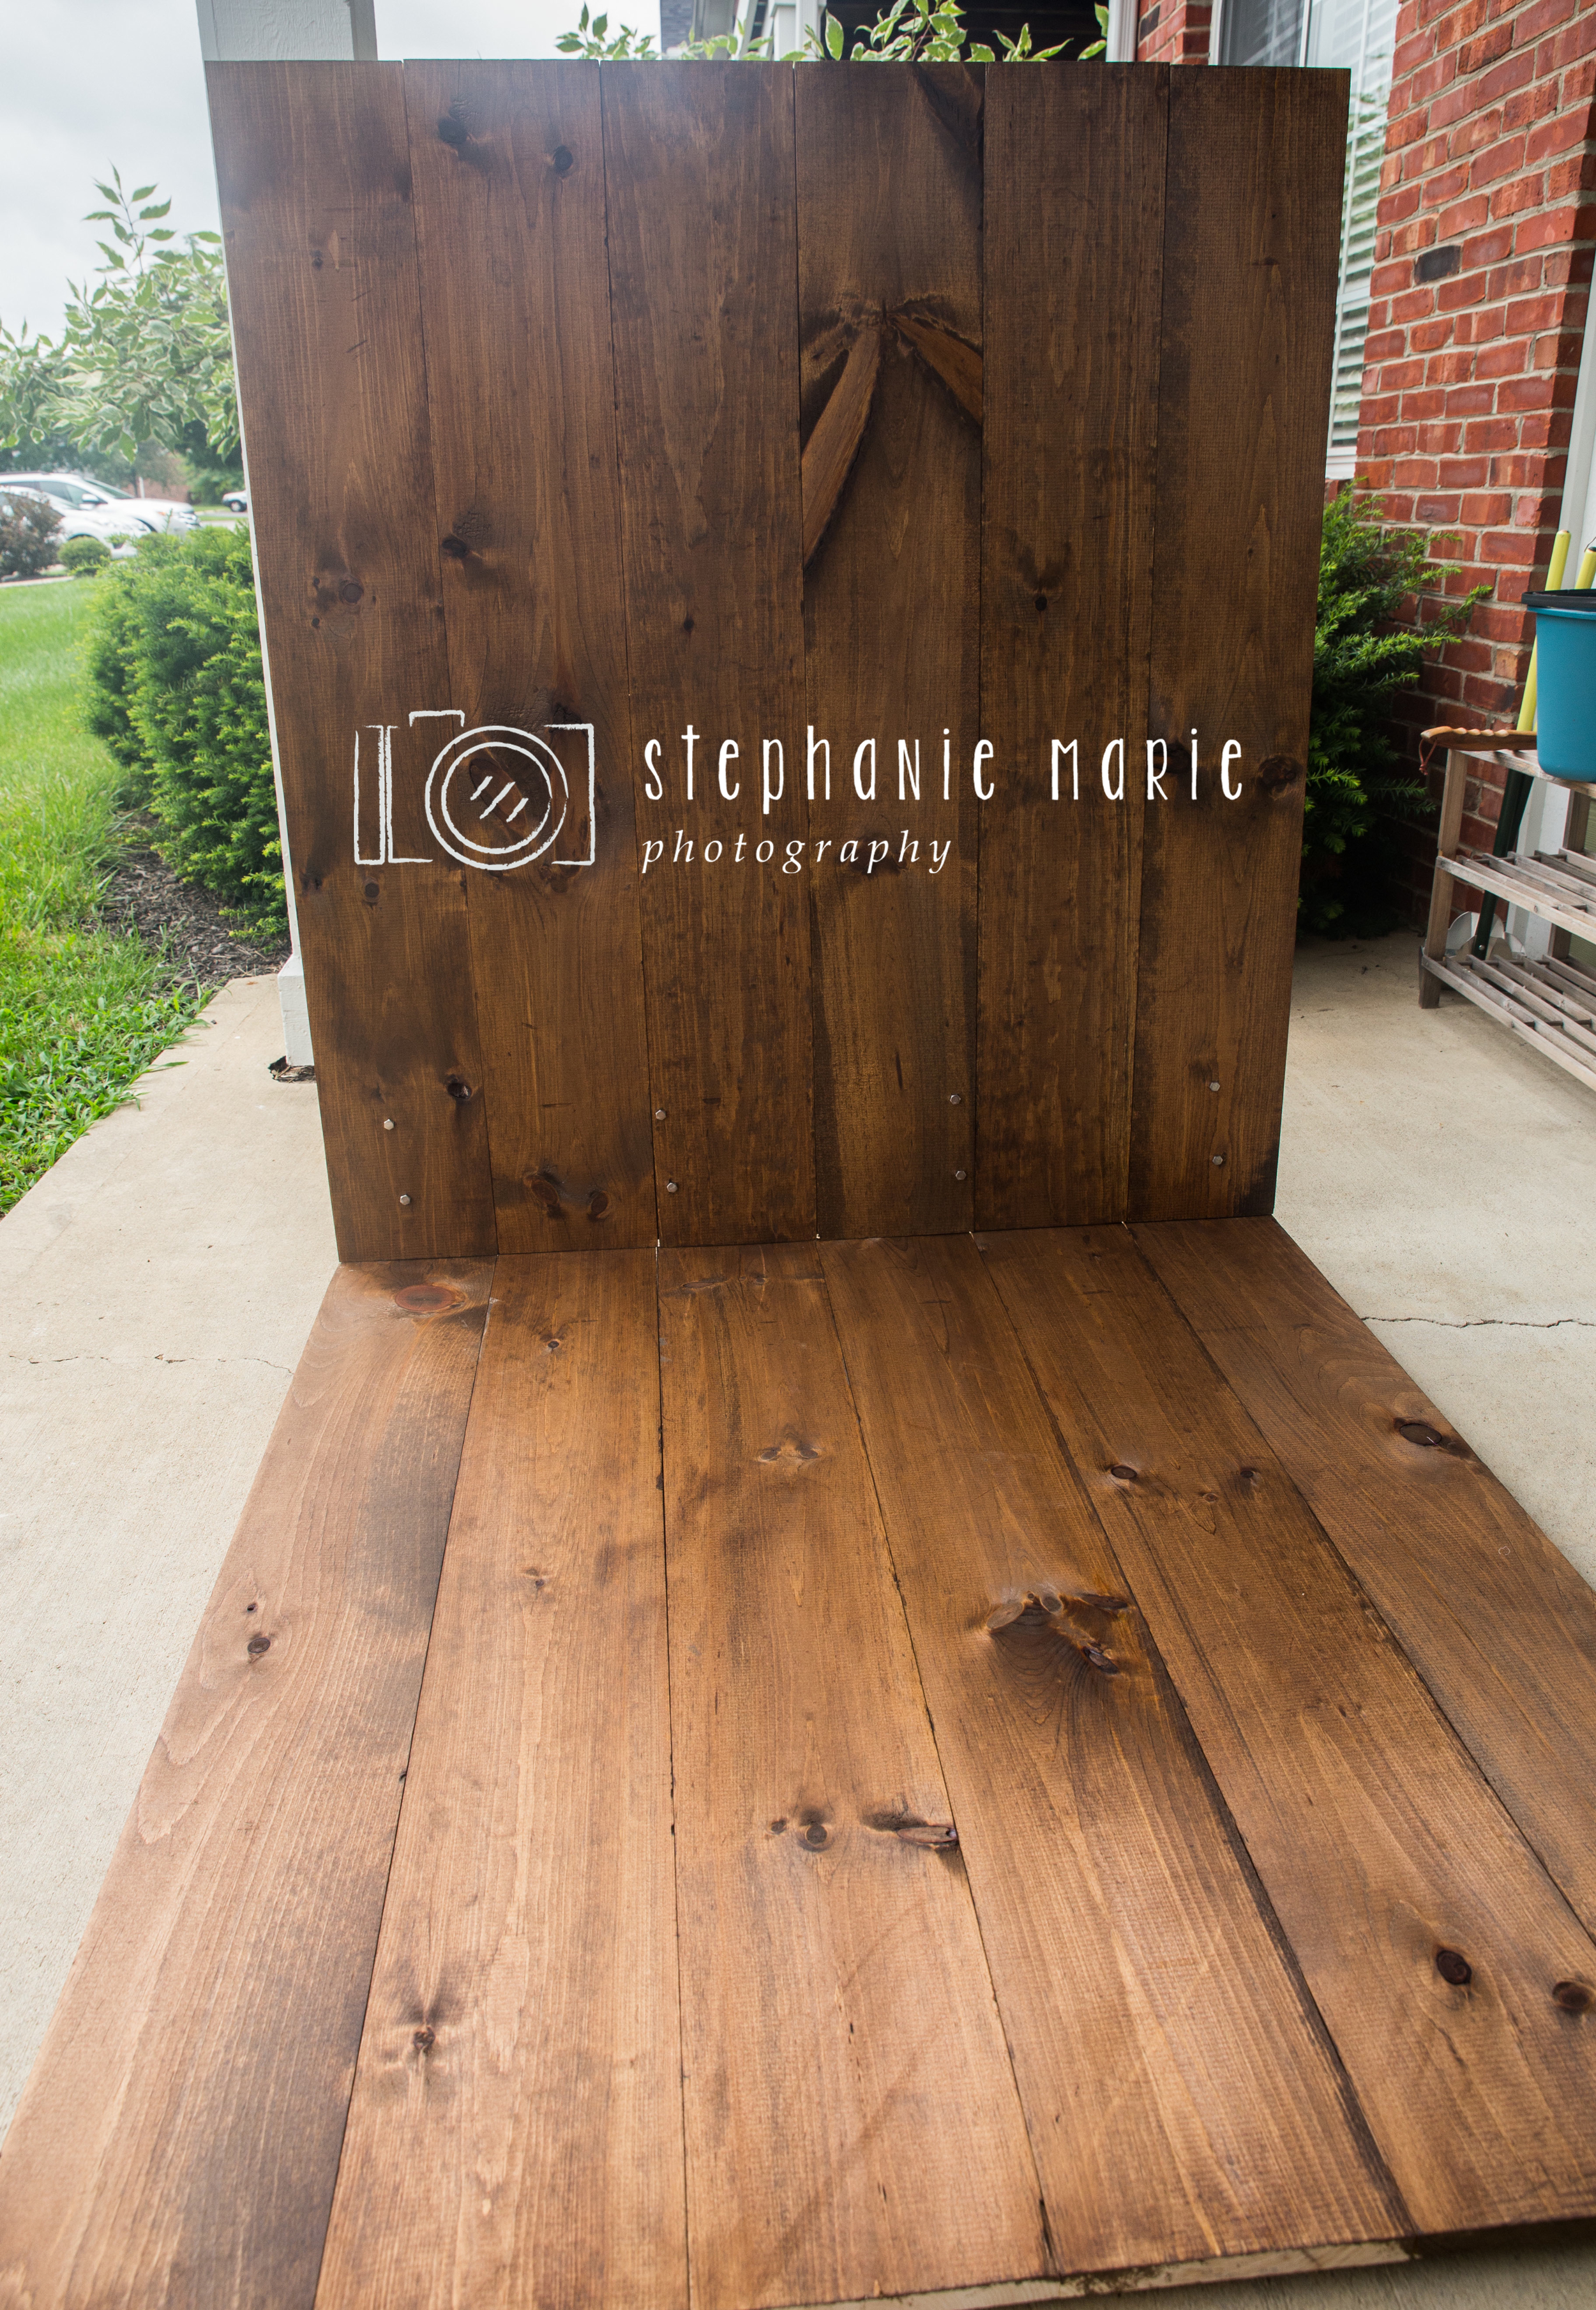 How to DIY Photography Faux Wood Floor & Wall Backdrop Prop For Photographers